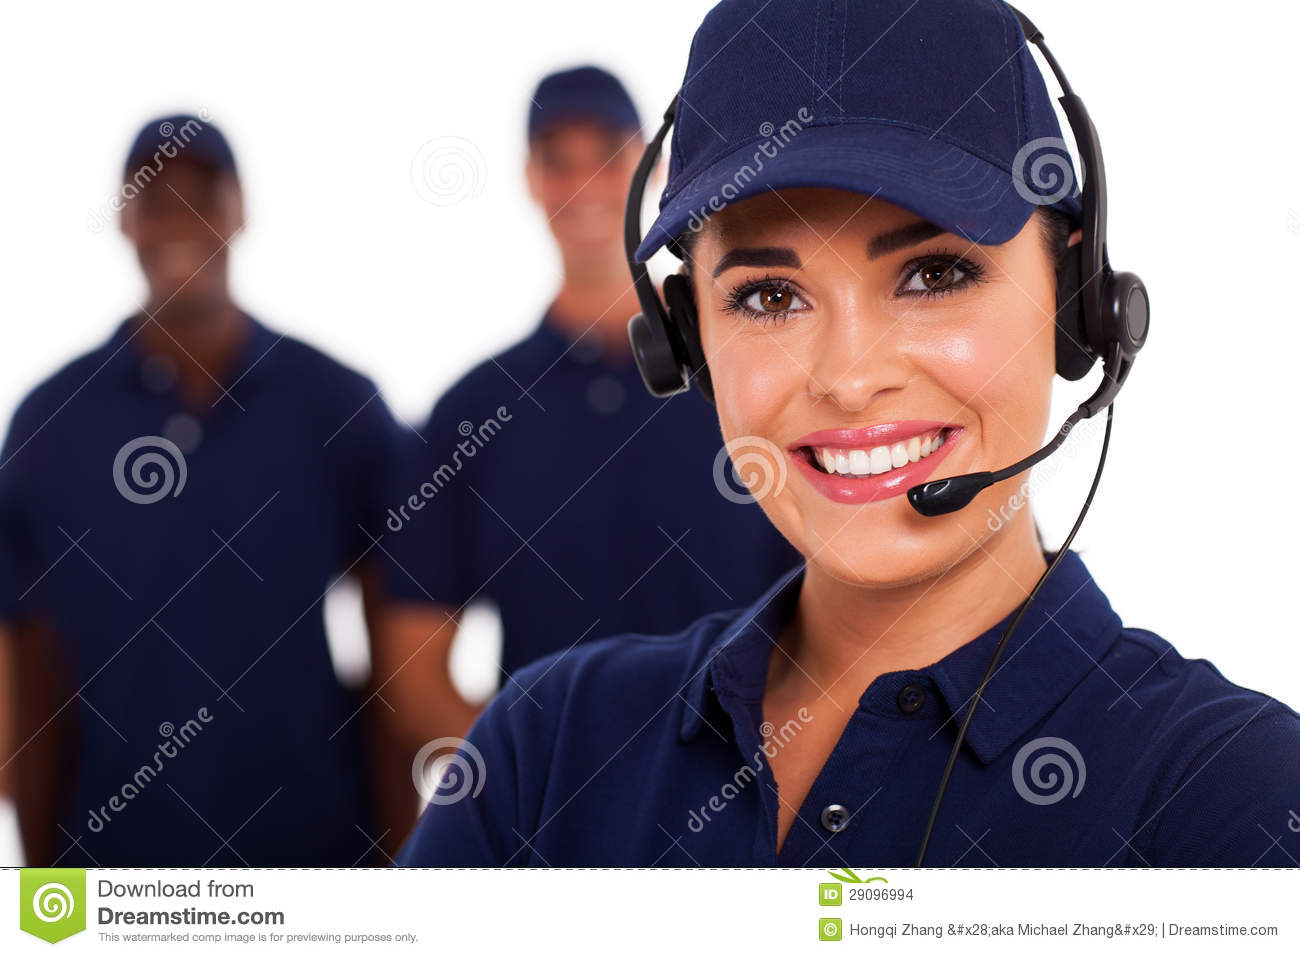 Technical call center stock photo Image of friendly  29096994